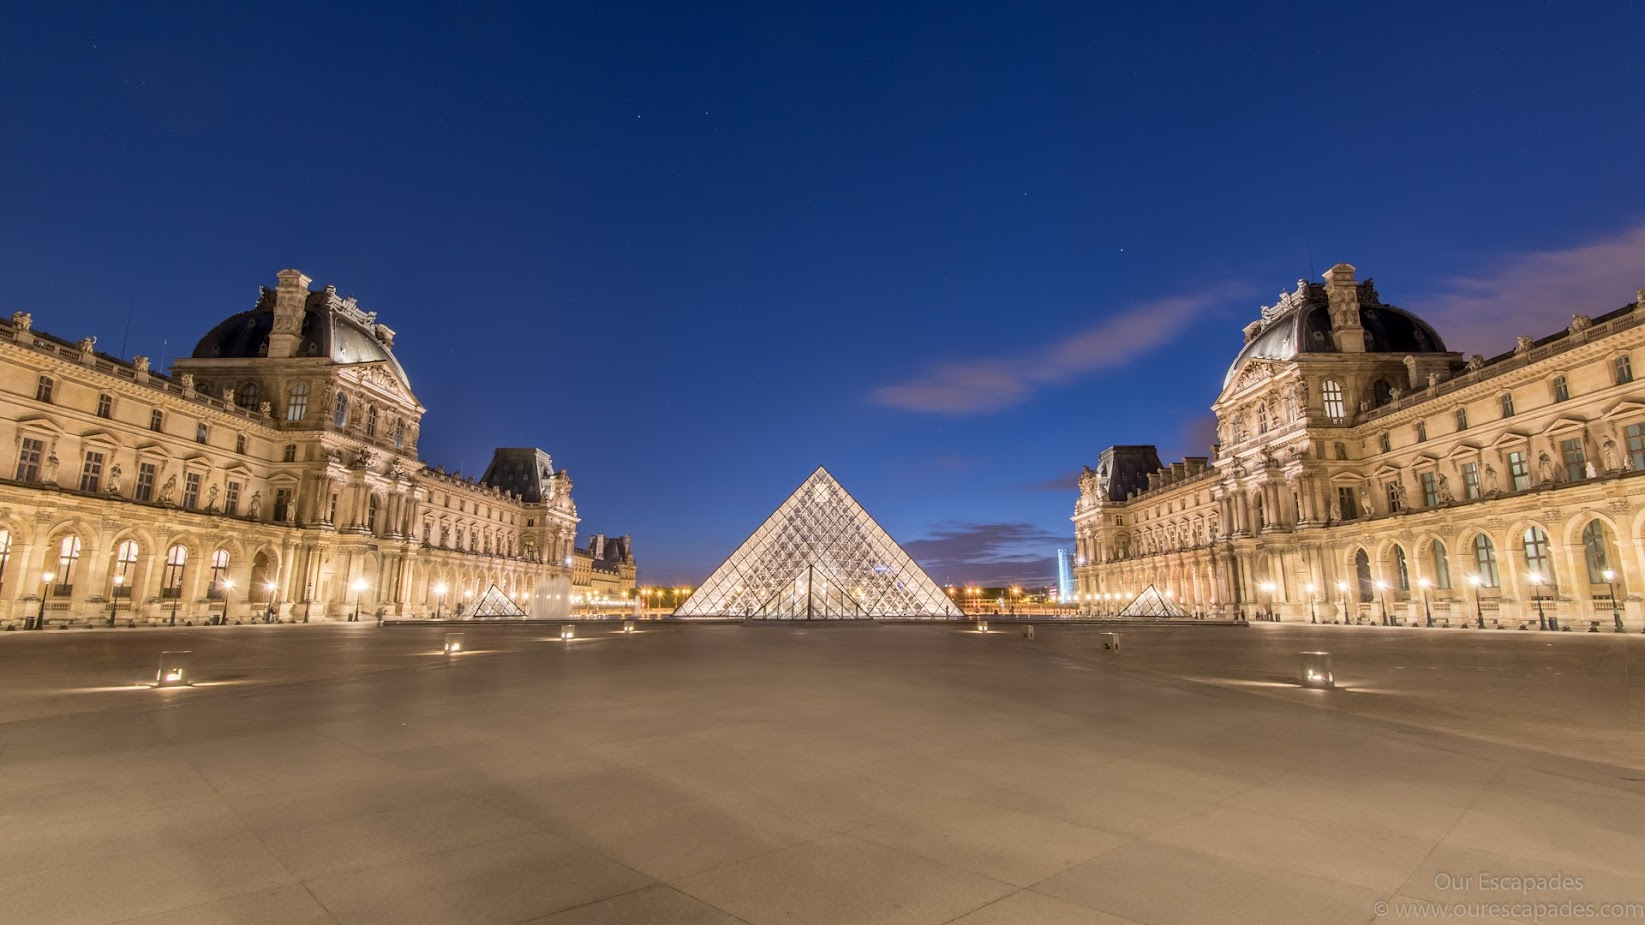 Louvre at night! So beautiful